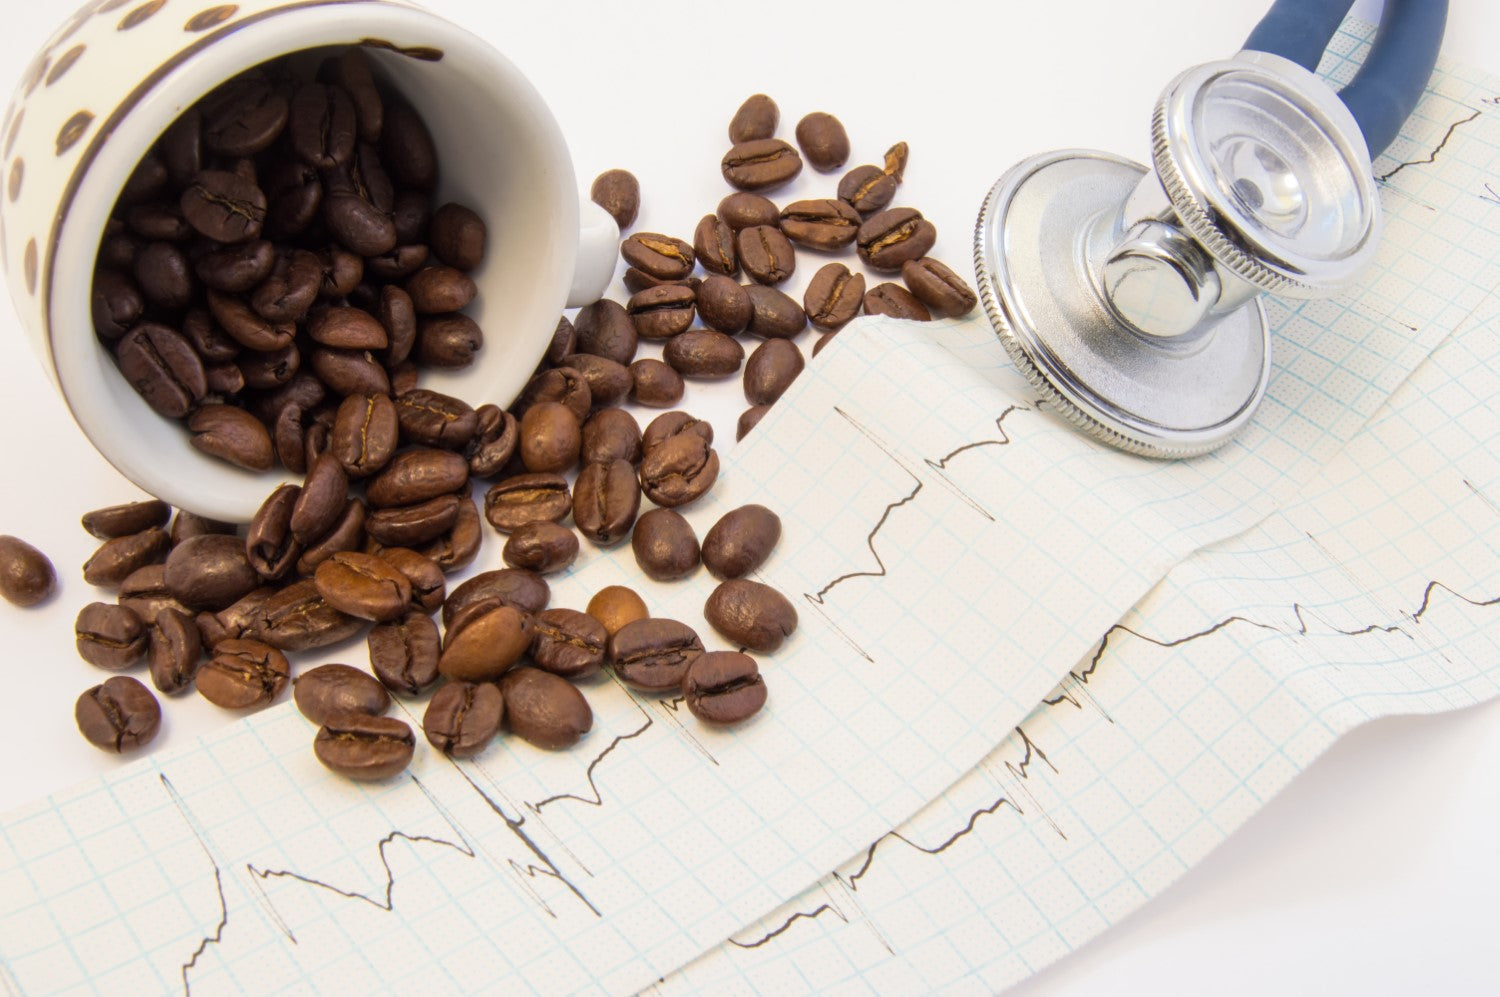 coffee beans and stethoscope